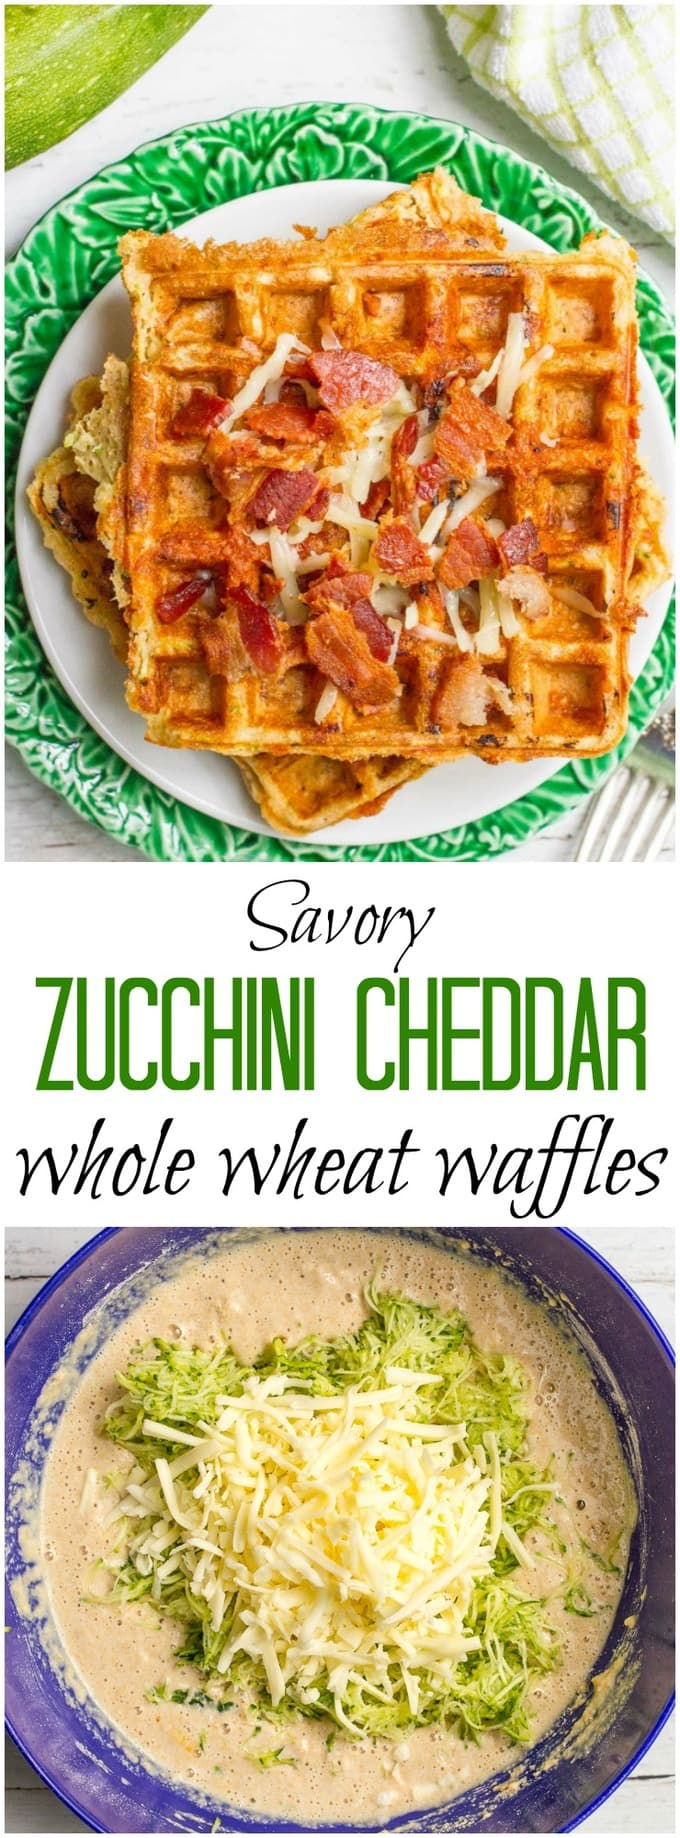 Savory waffles with zucchini and cheddar cheese make a delicious, healthy brunch or breakfast-for-dinner meal! | FamilyFoodontheTable.com